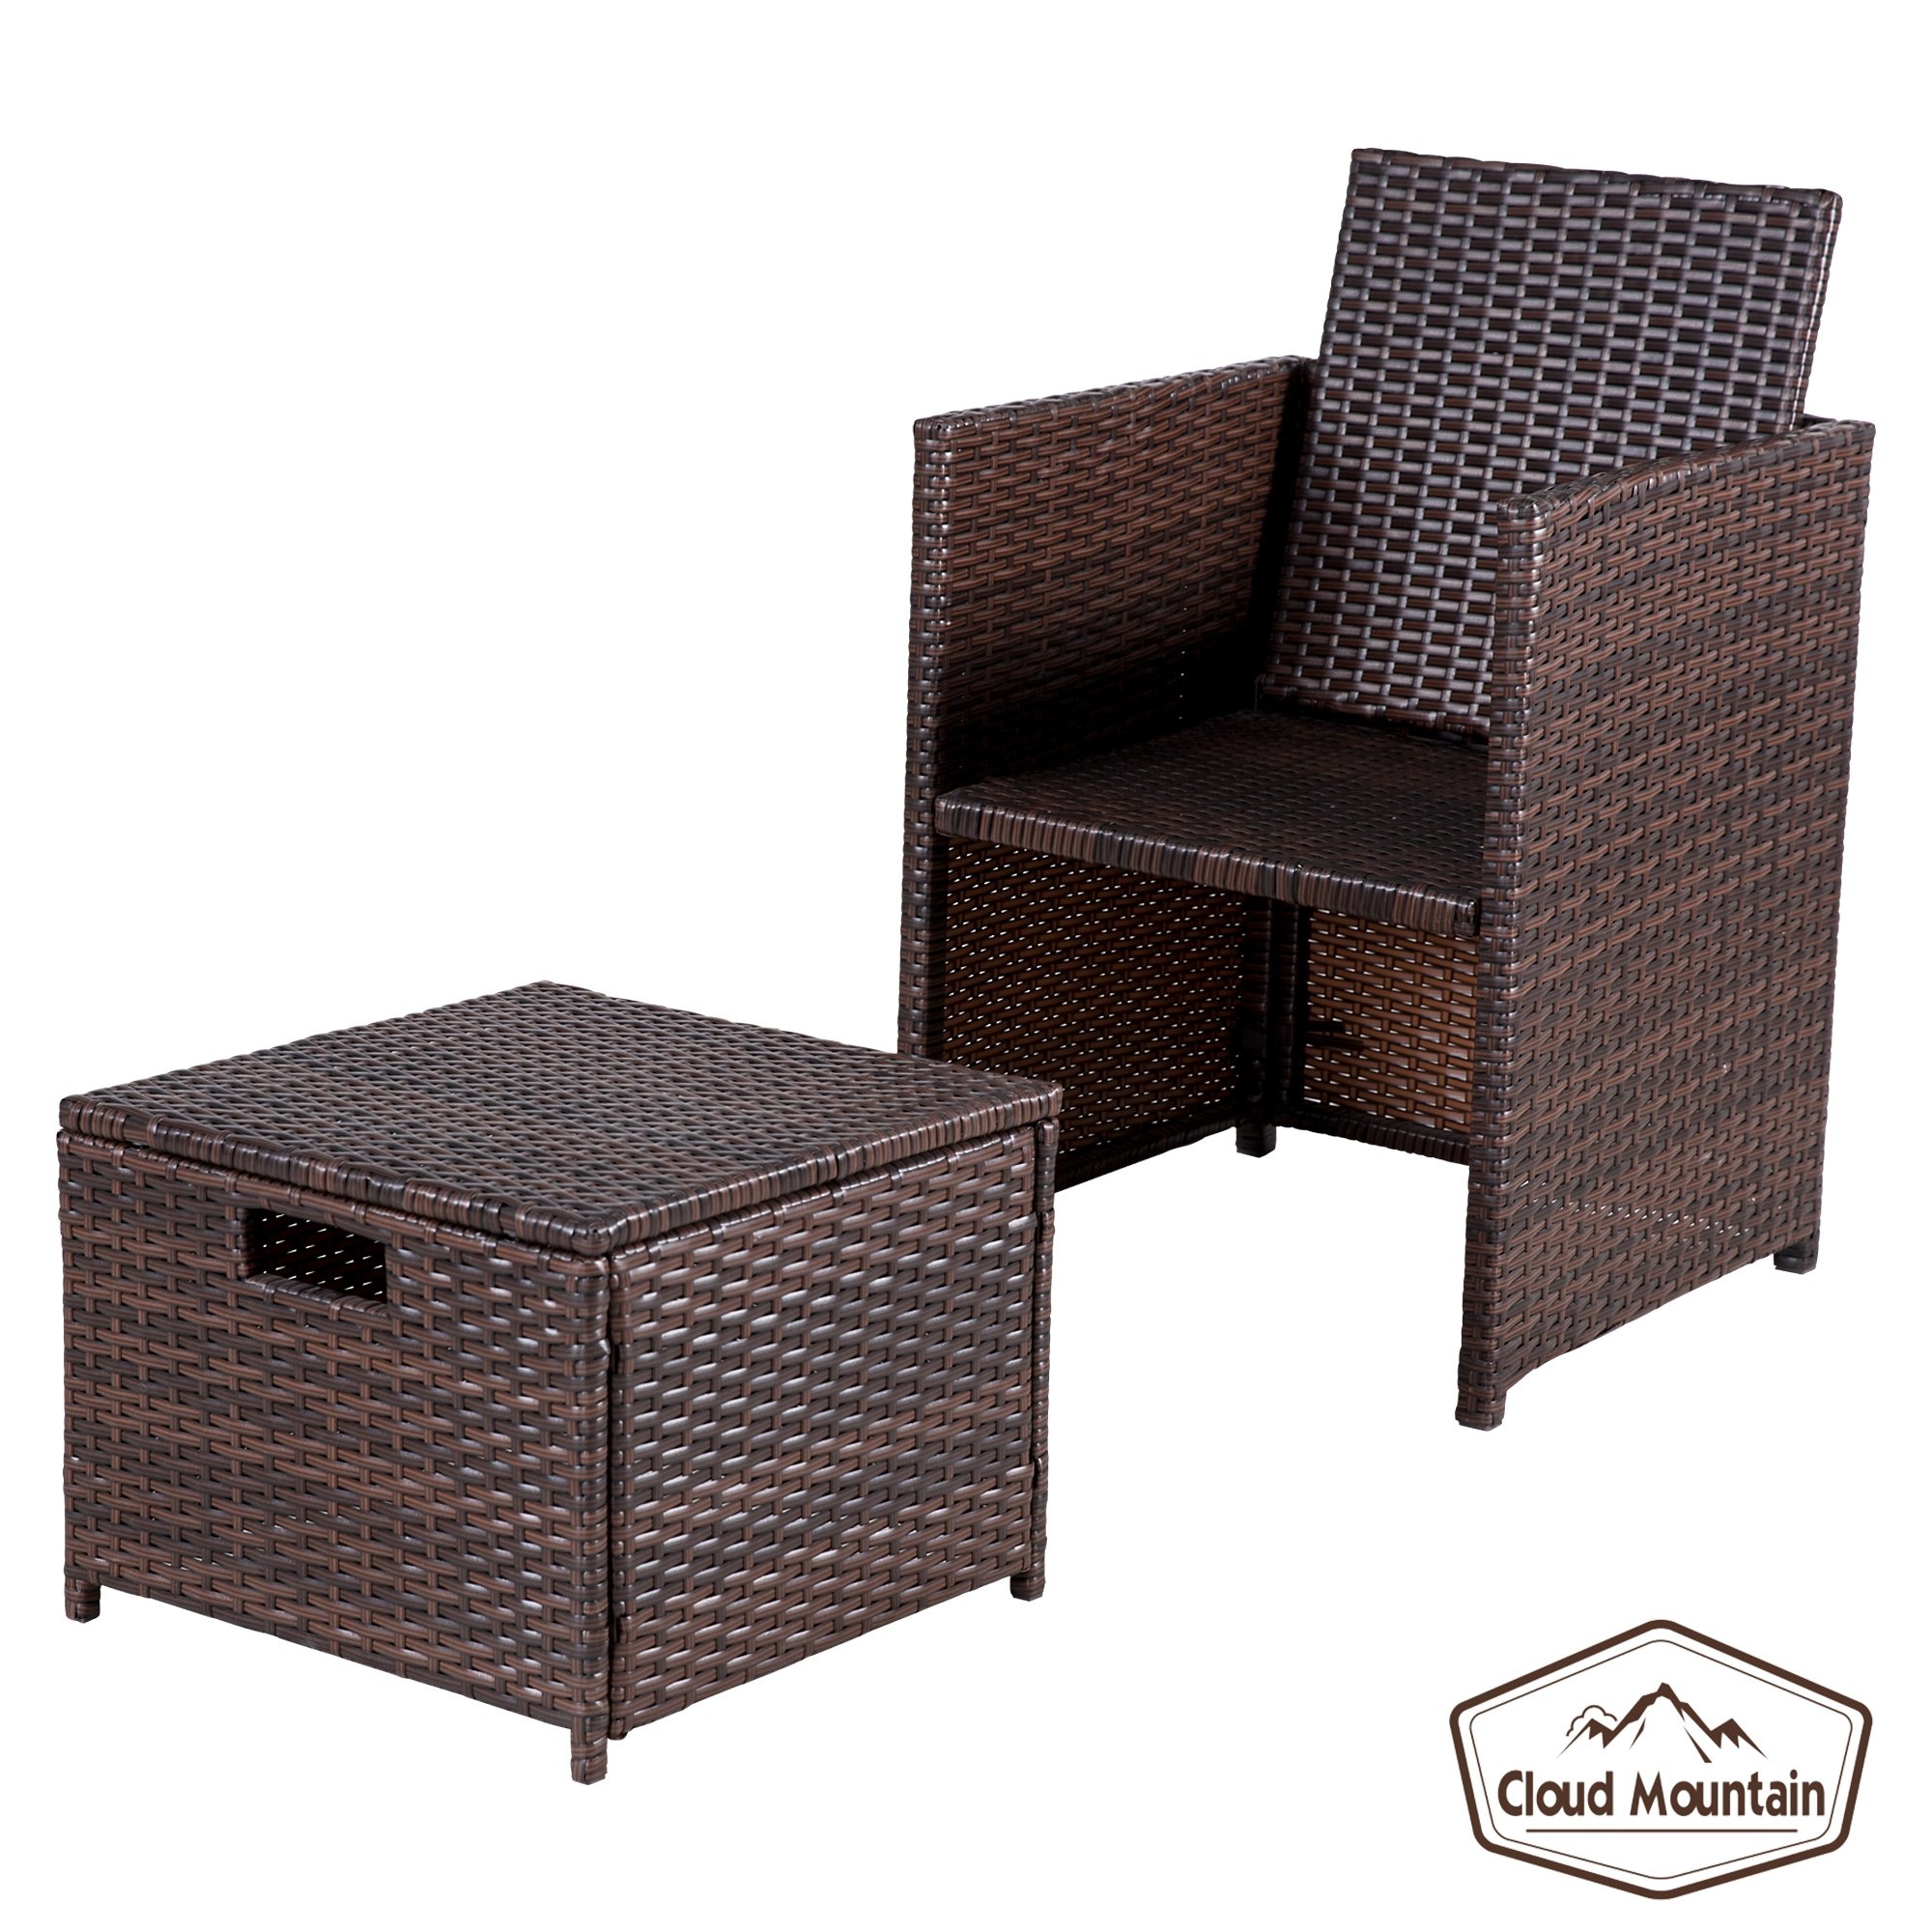 Cloud Mountain Outdoor 5 Piece Rattan Wicker Furniture Bar Set Dining Set Cushioned Patio Furniture Set Space Saving - 1 Patio Dining Table & 4 Conversation Bistro Set, Brown by Cloud Mountain (Image #9)